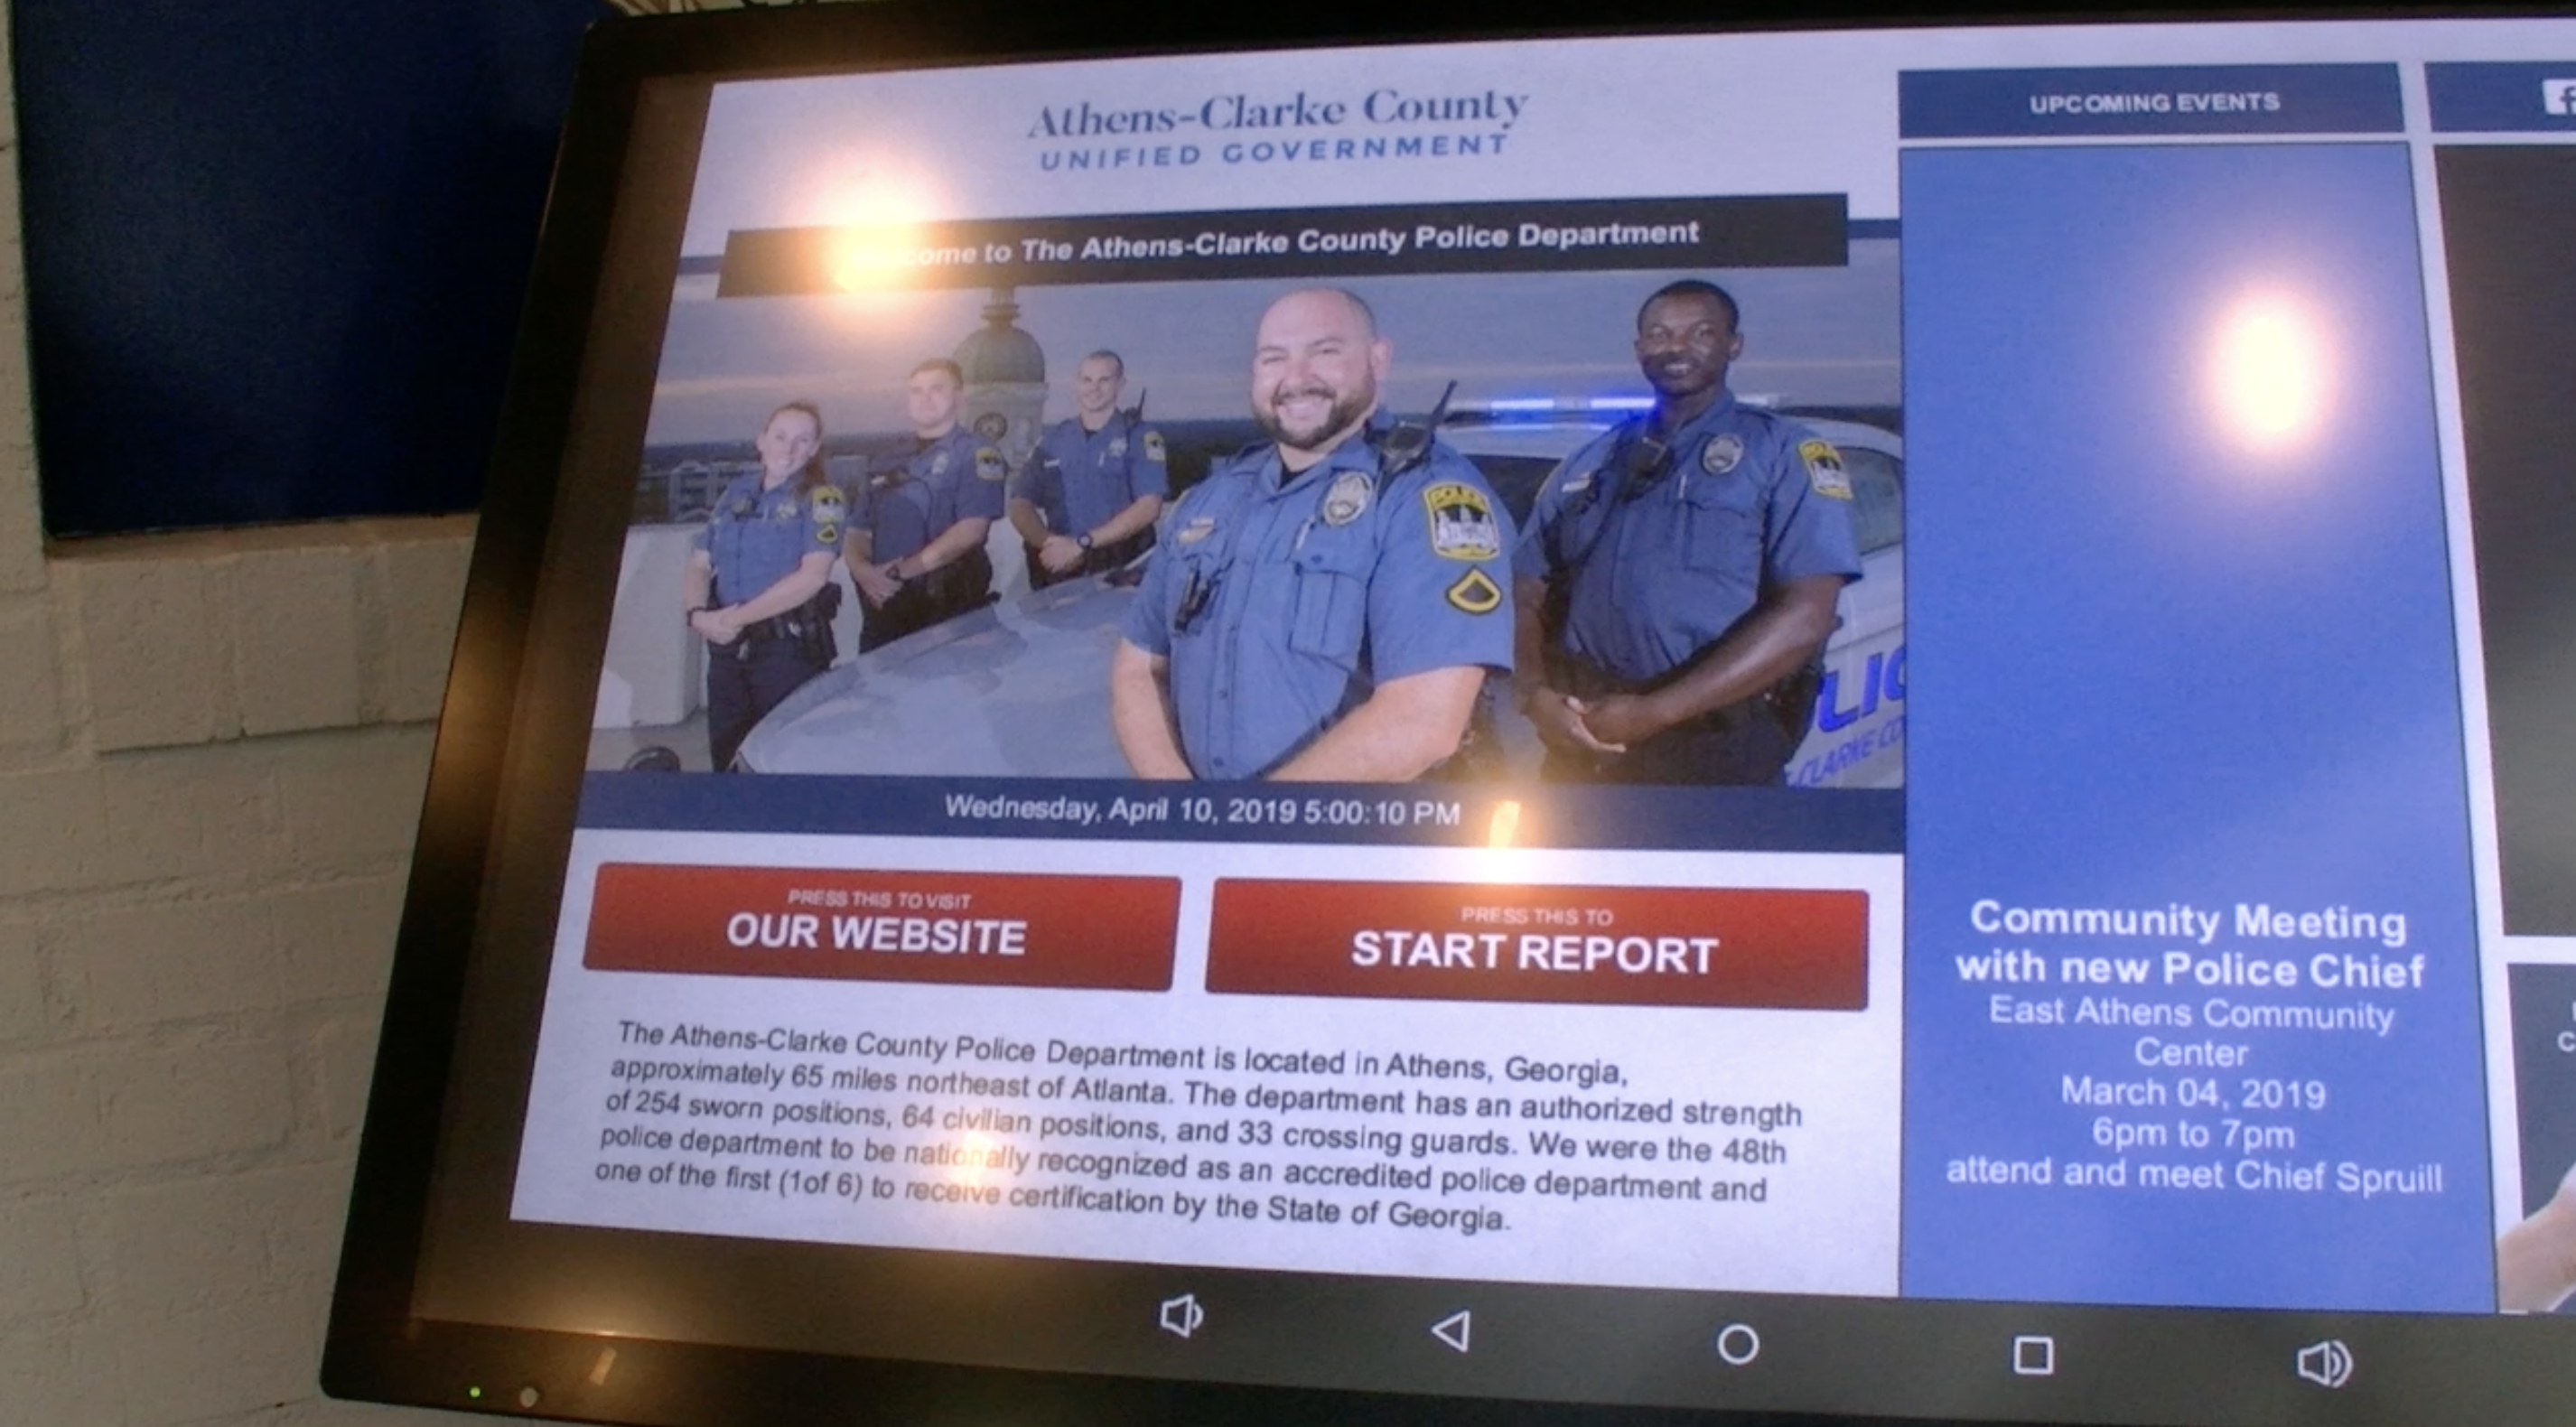 Athens-Clarke County Police Department Offers Online